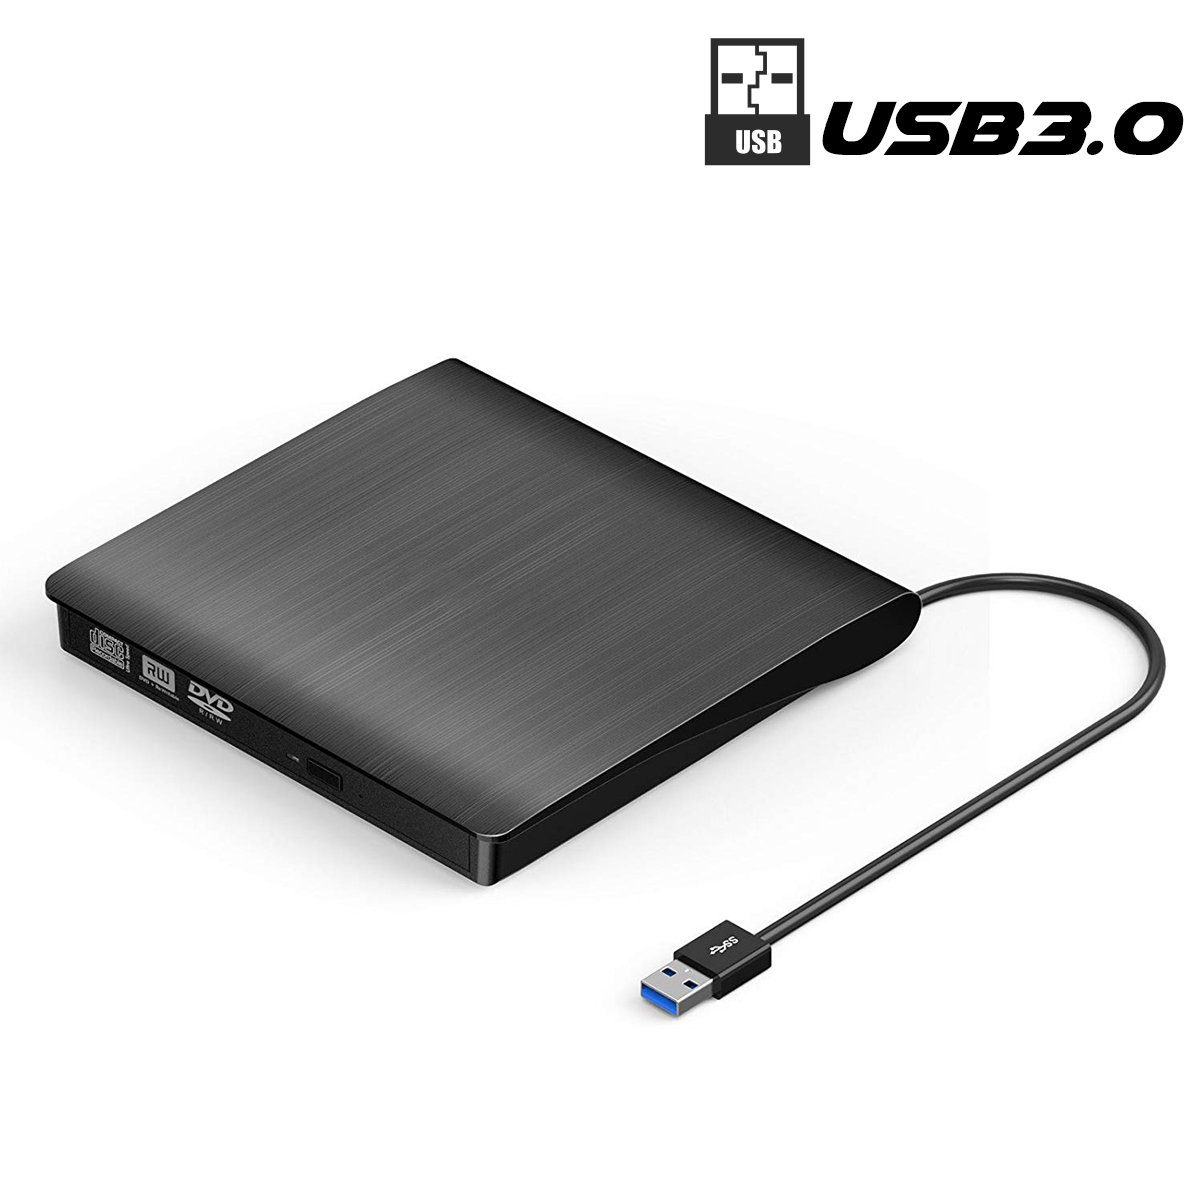 External DVD Drive, SUMBOAT USB 3.0 Portable Slim DVD CD Rom Burner Rewriter Driver,High Speed Data Transfer for Laptop Mac 10 OS Windows XP /2003/Vista/Win 7/ Win 8/Win 10 Linux by SUMBOAT (Image #1)